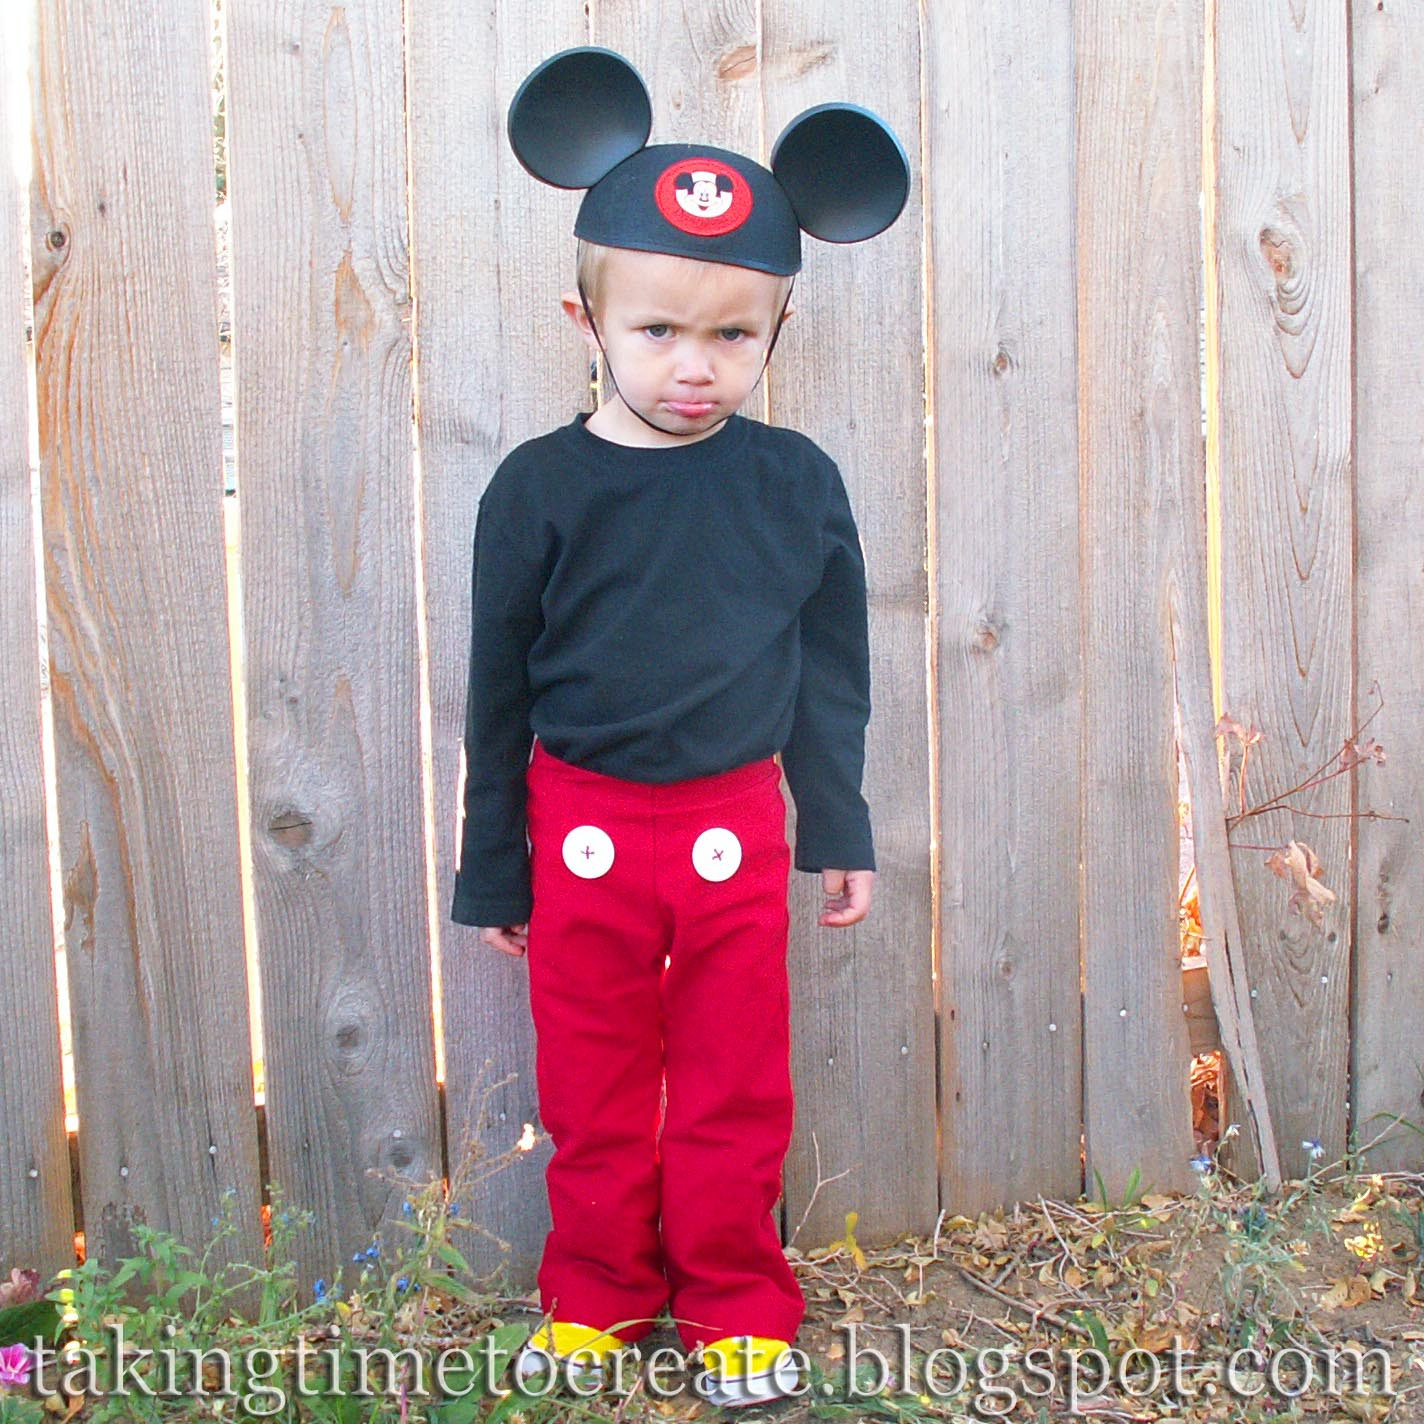 Mickey Mouse Costume DIY  Taking Time To Create A Simple Mickey Mouse Costume